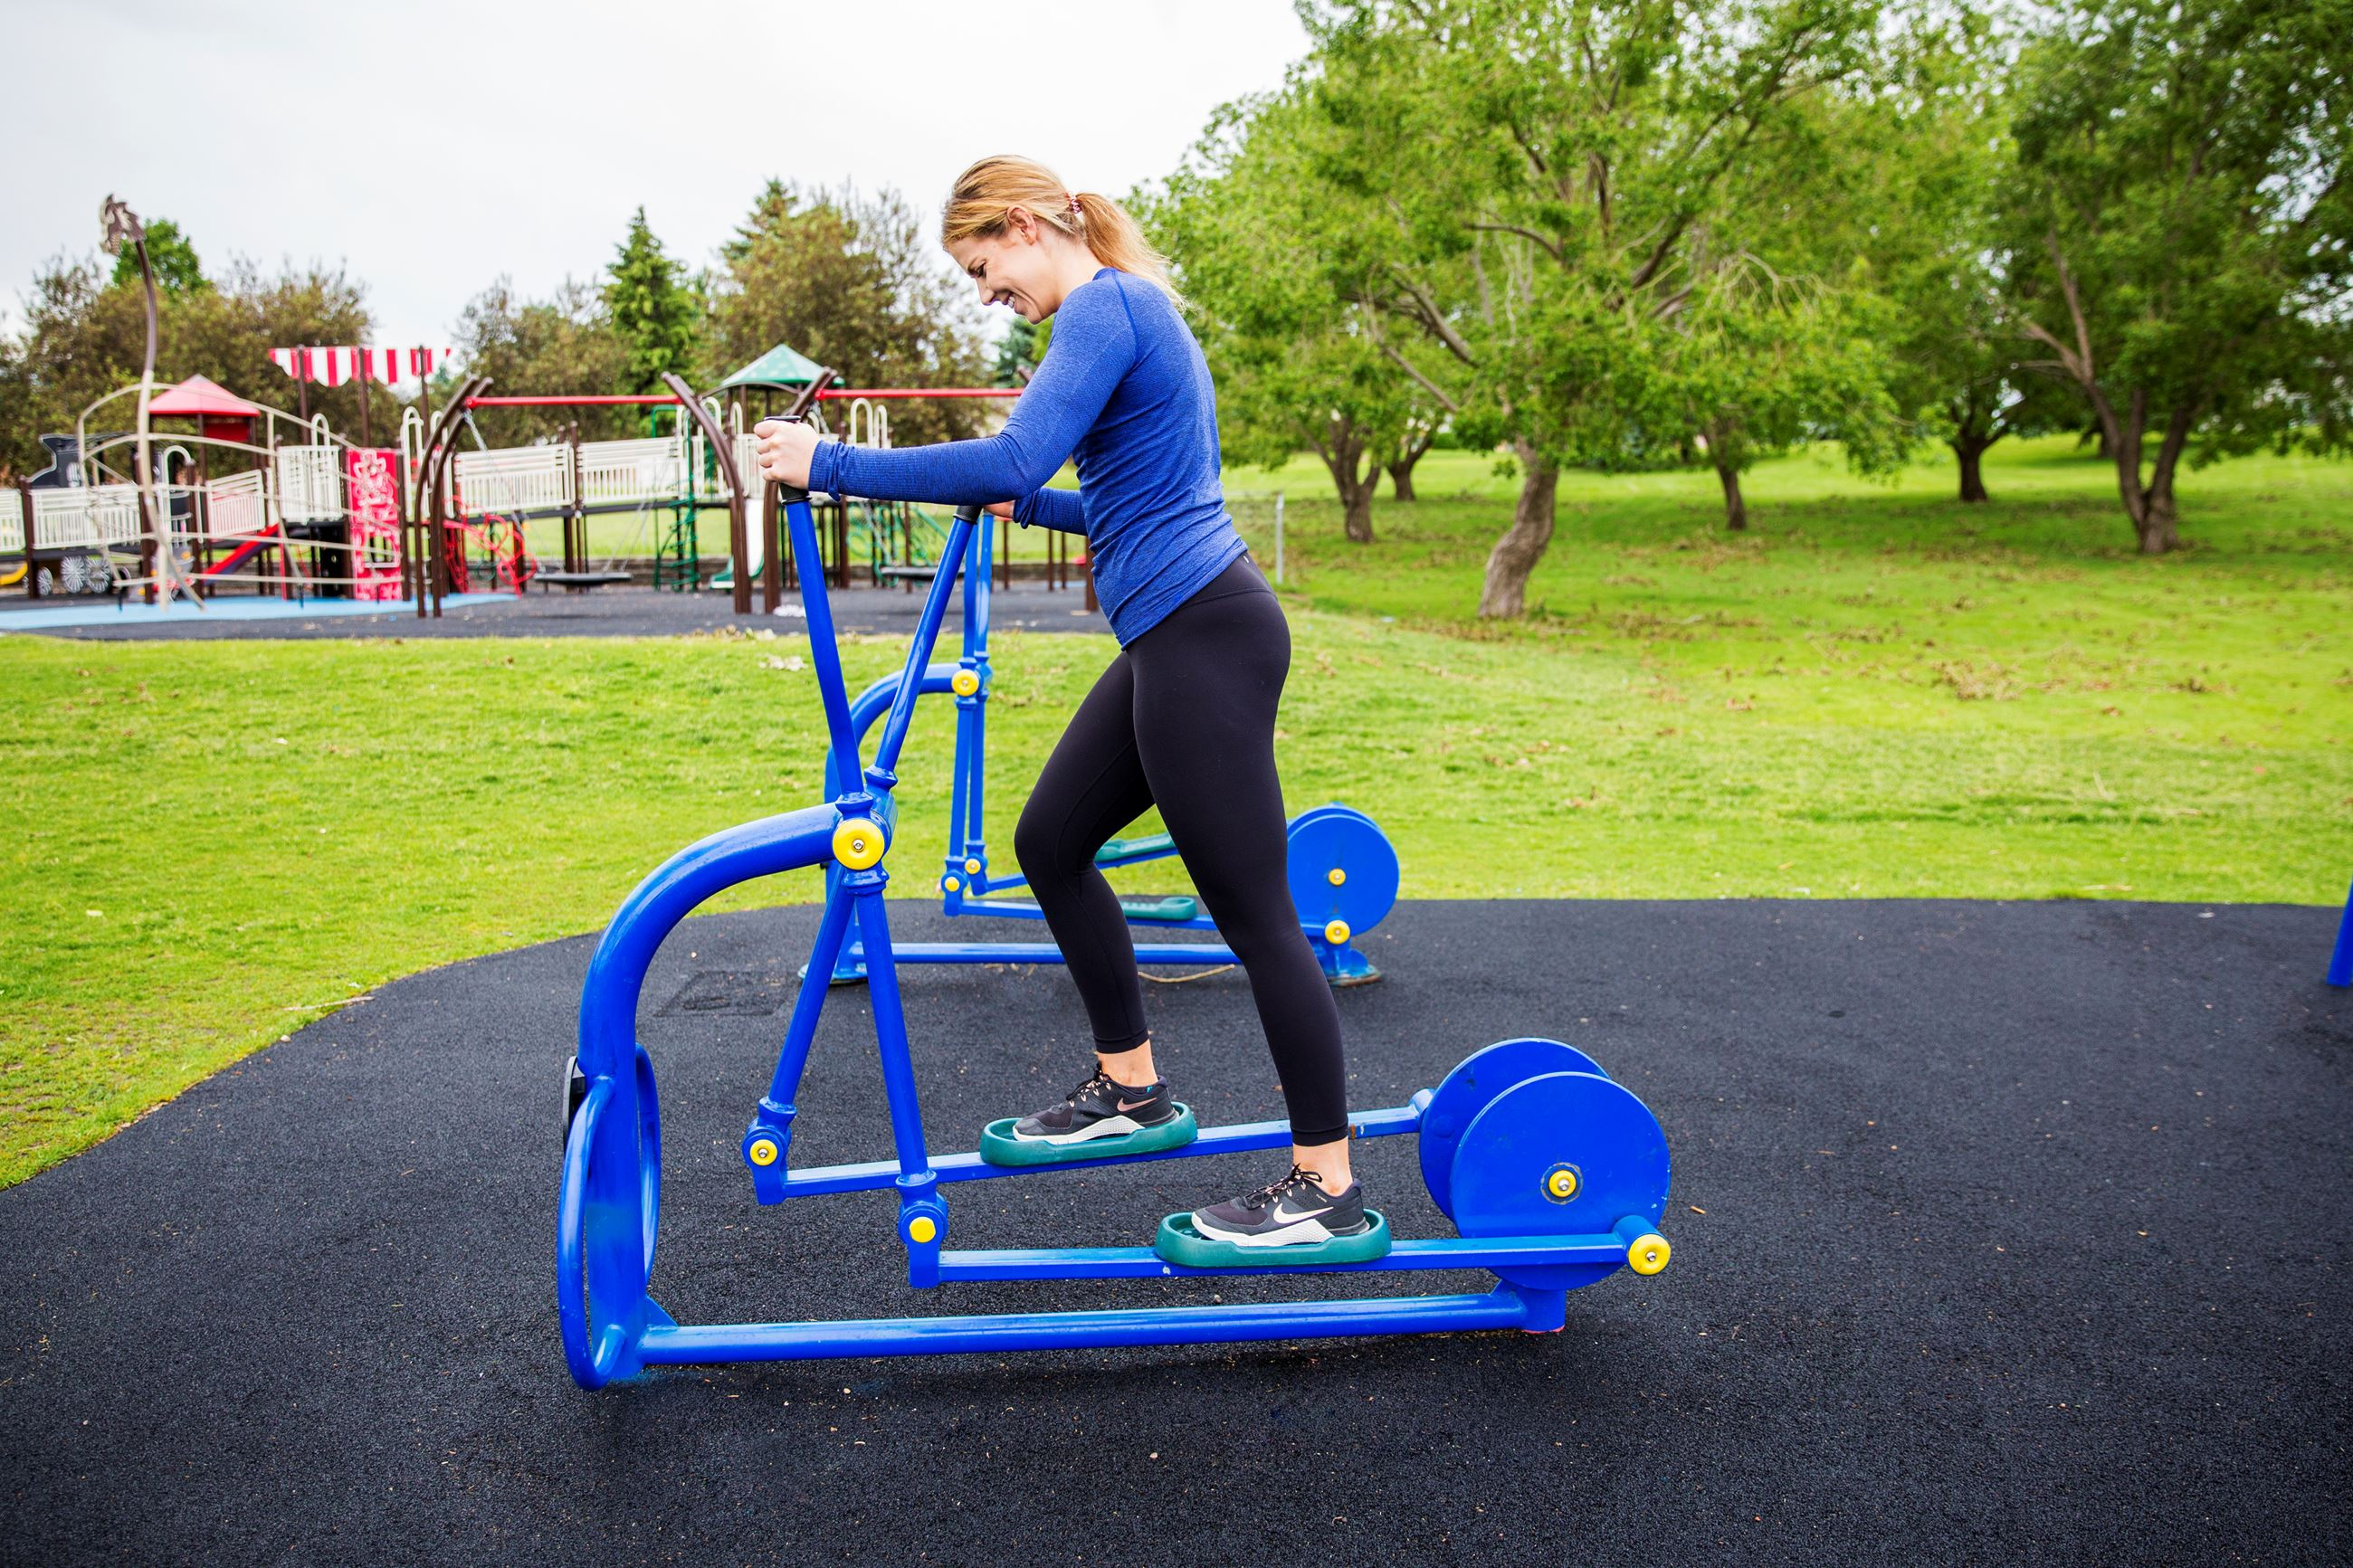 View a video demonstrating the use of the Elliptical Trainer equipment